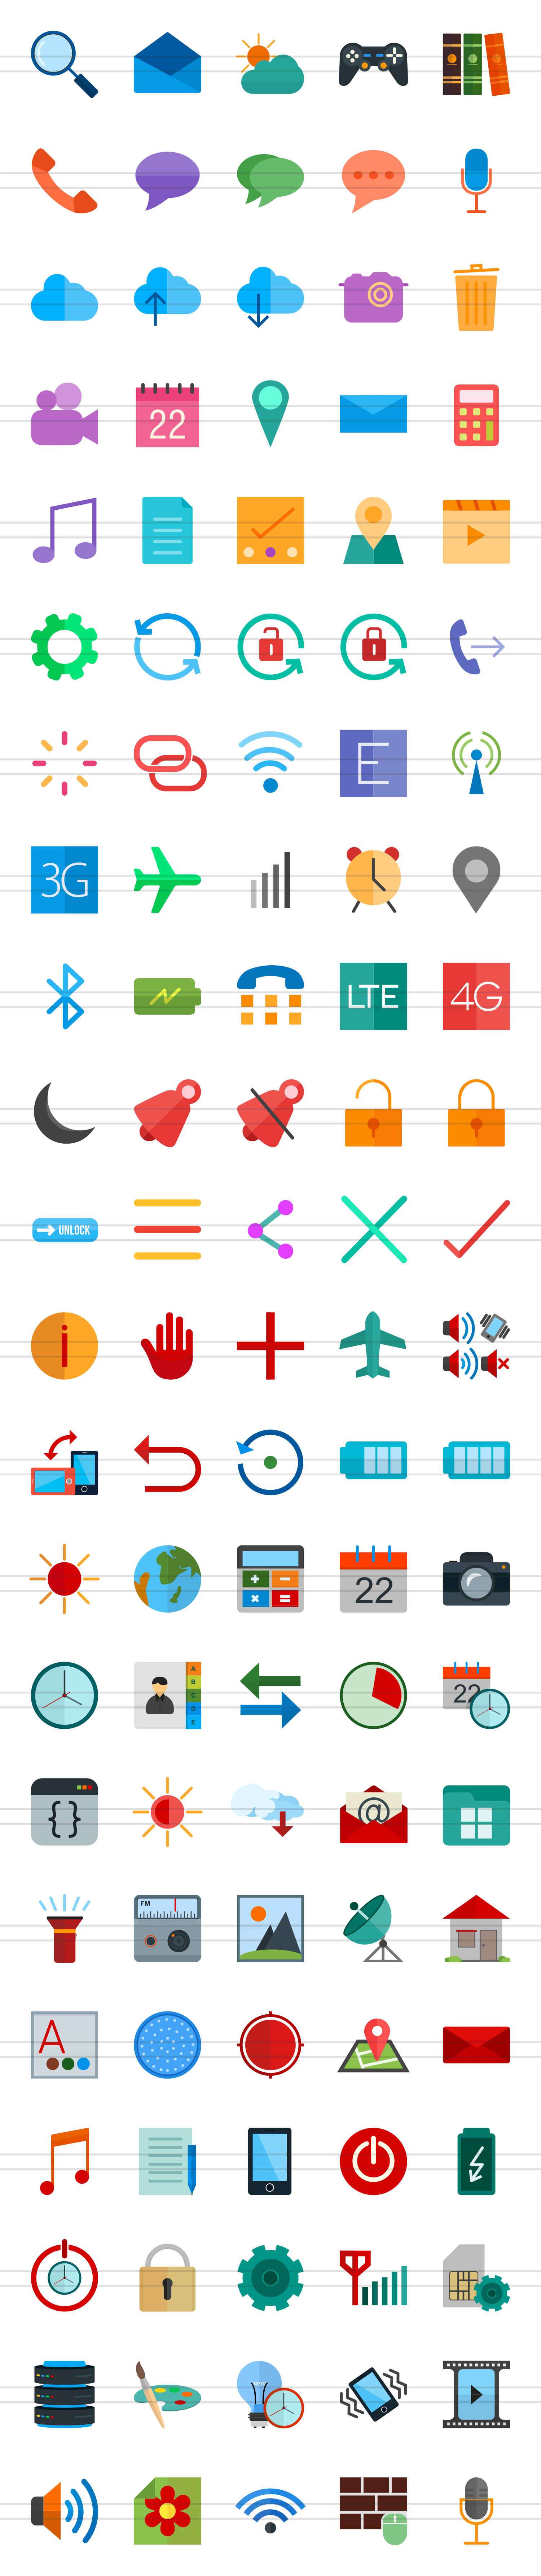 50 Smartphone Flat Multicolor Icons example image 2